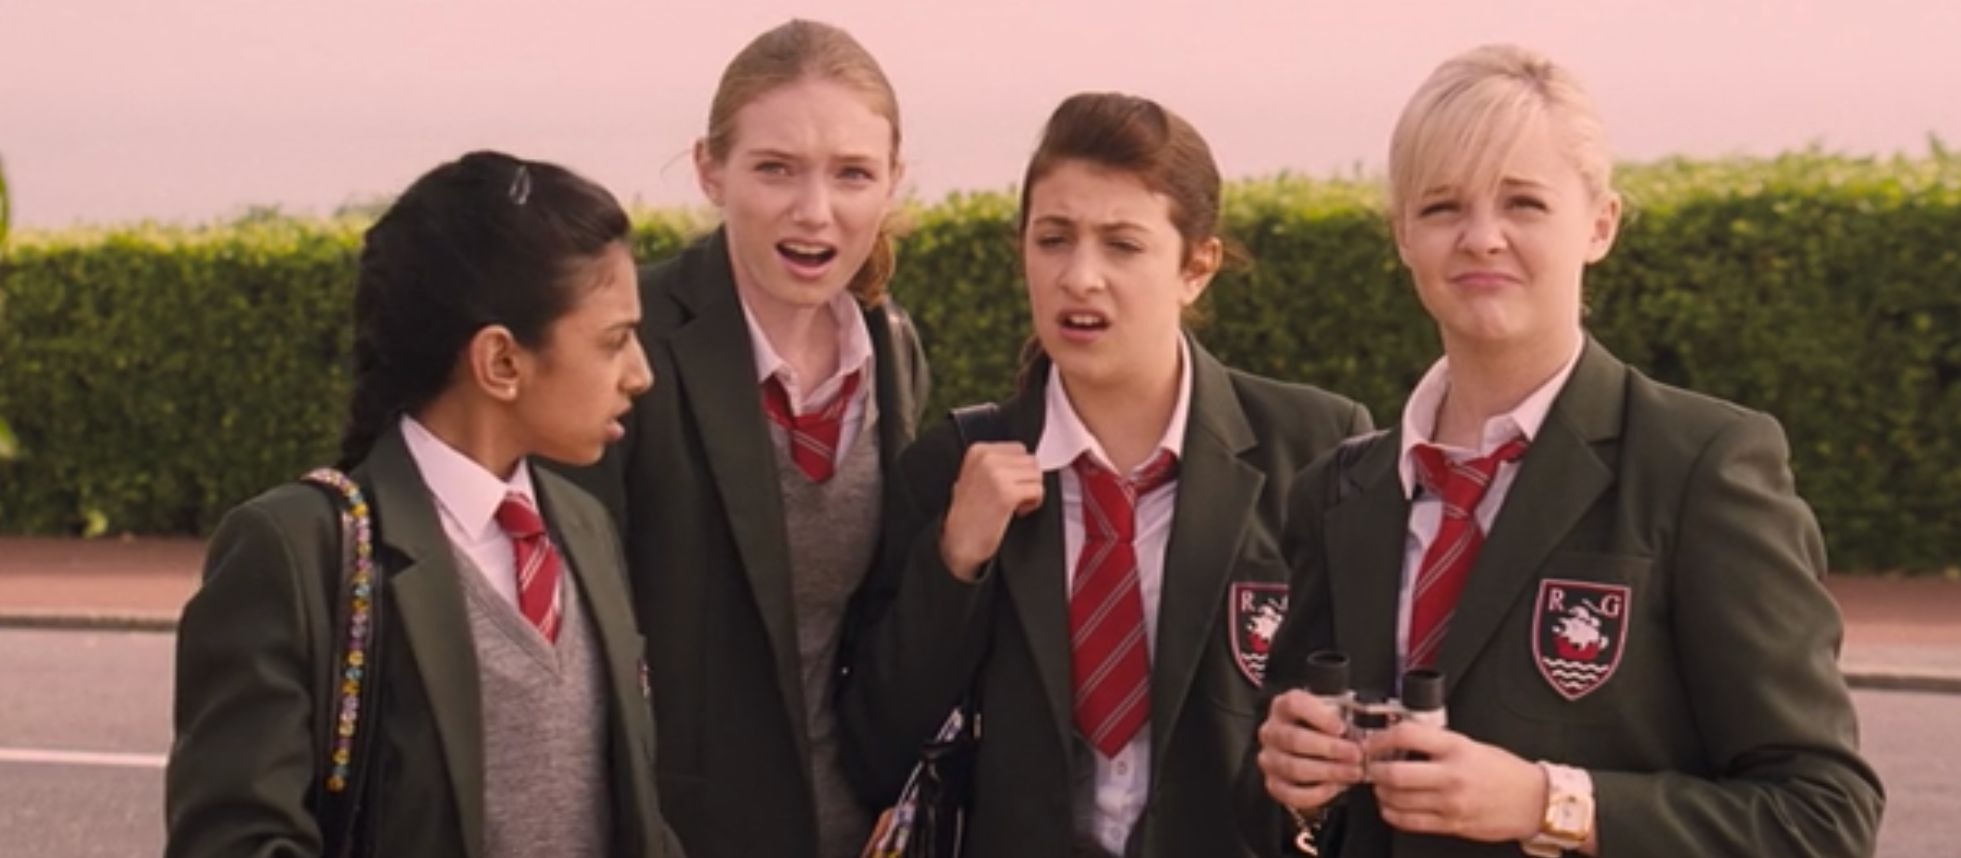 Angus Thongs And Perfect Snogging Cast how well do you remember angus, thongs and perfect snogging